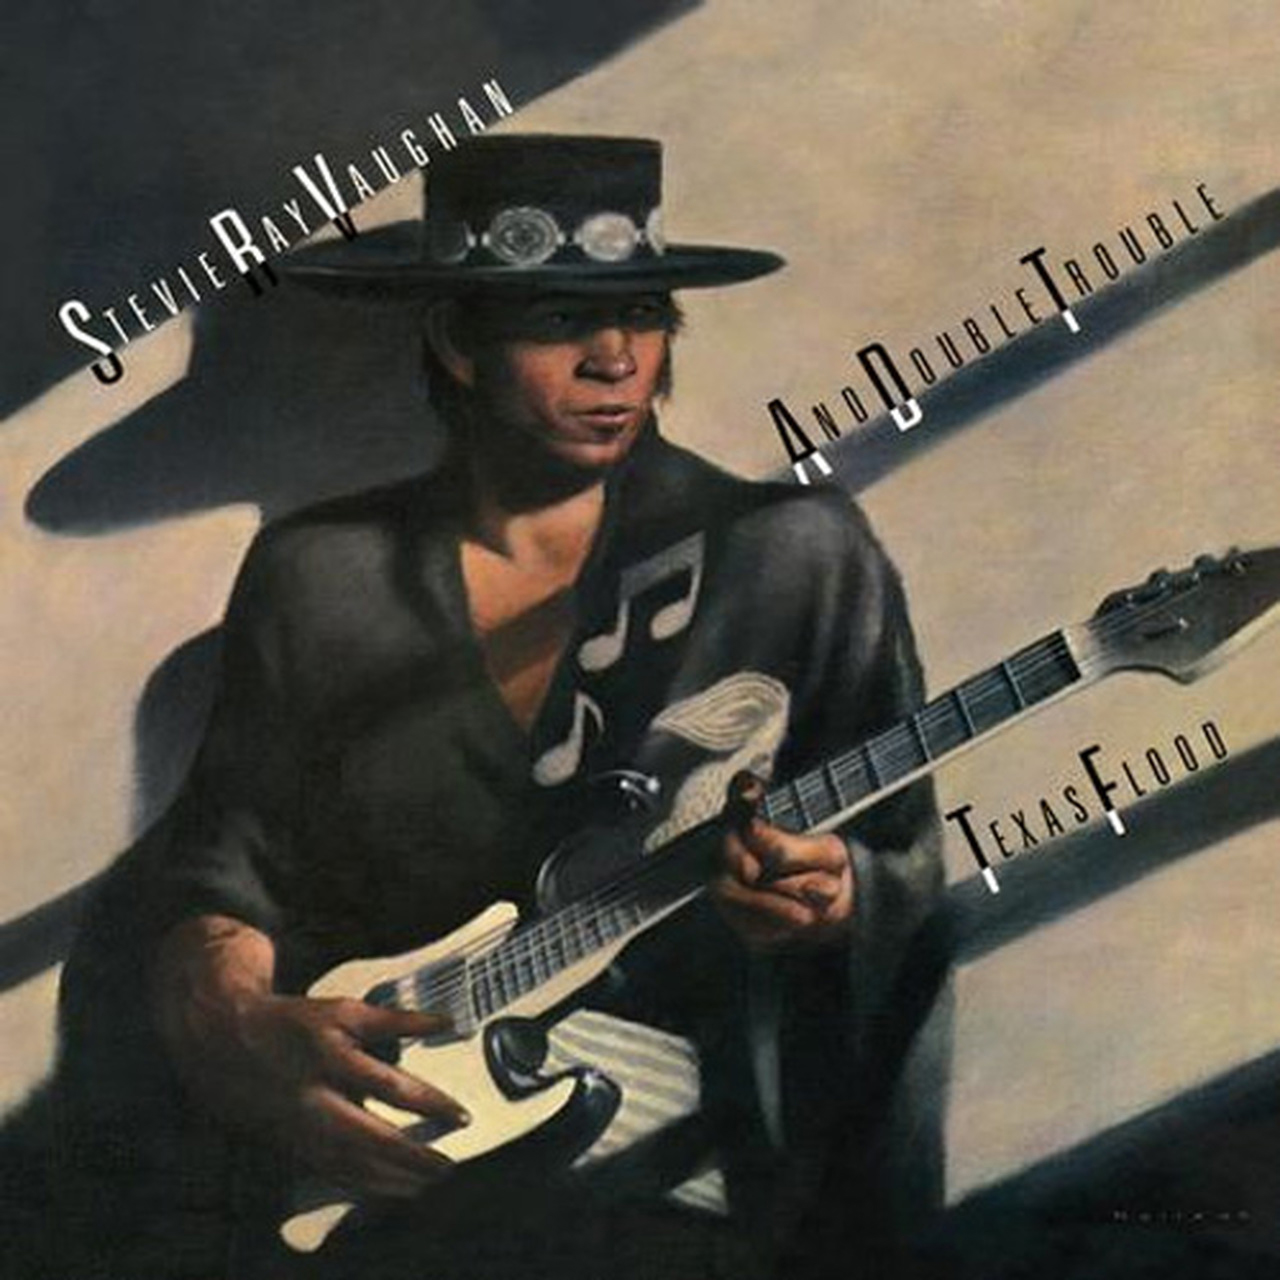 Stevie Ray Vaughan and Double Trouble Texas Flood 180g Import LP